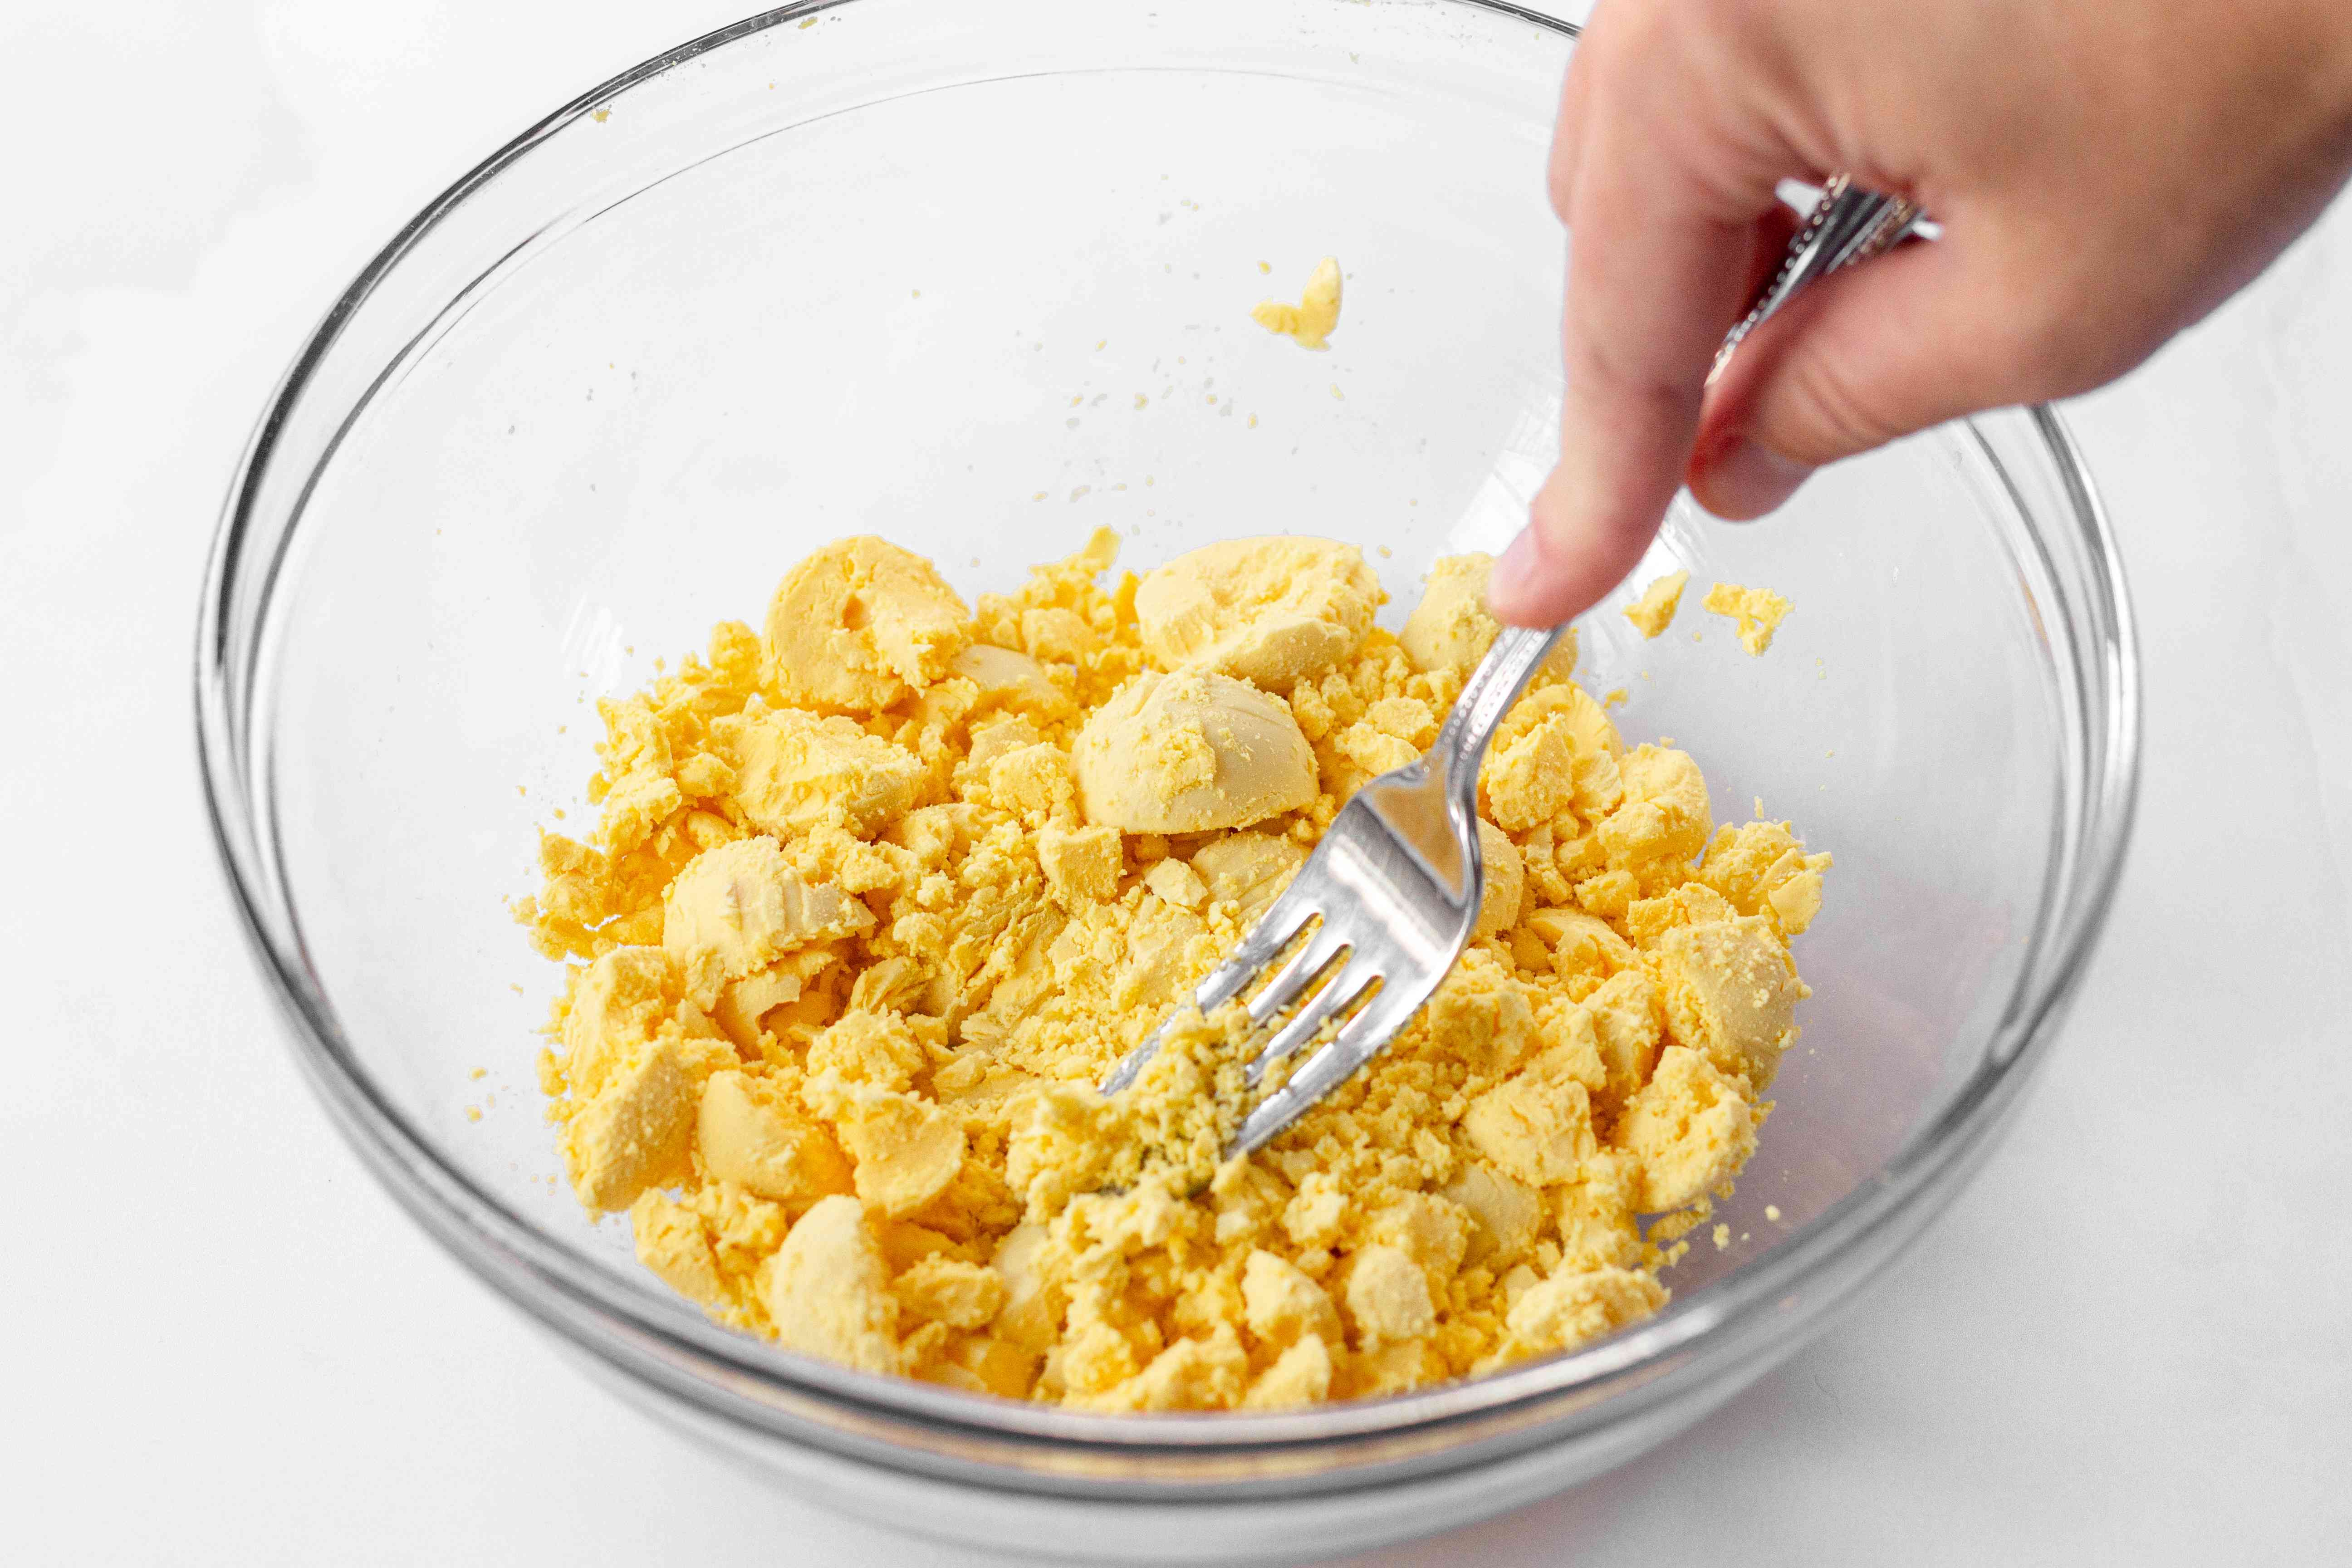 Hard boiled egg yolks mashed with a fork in a glass bowl.